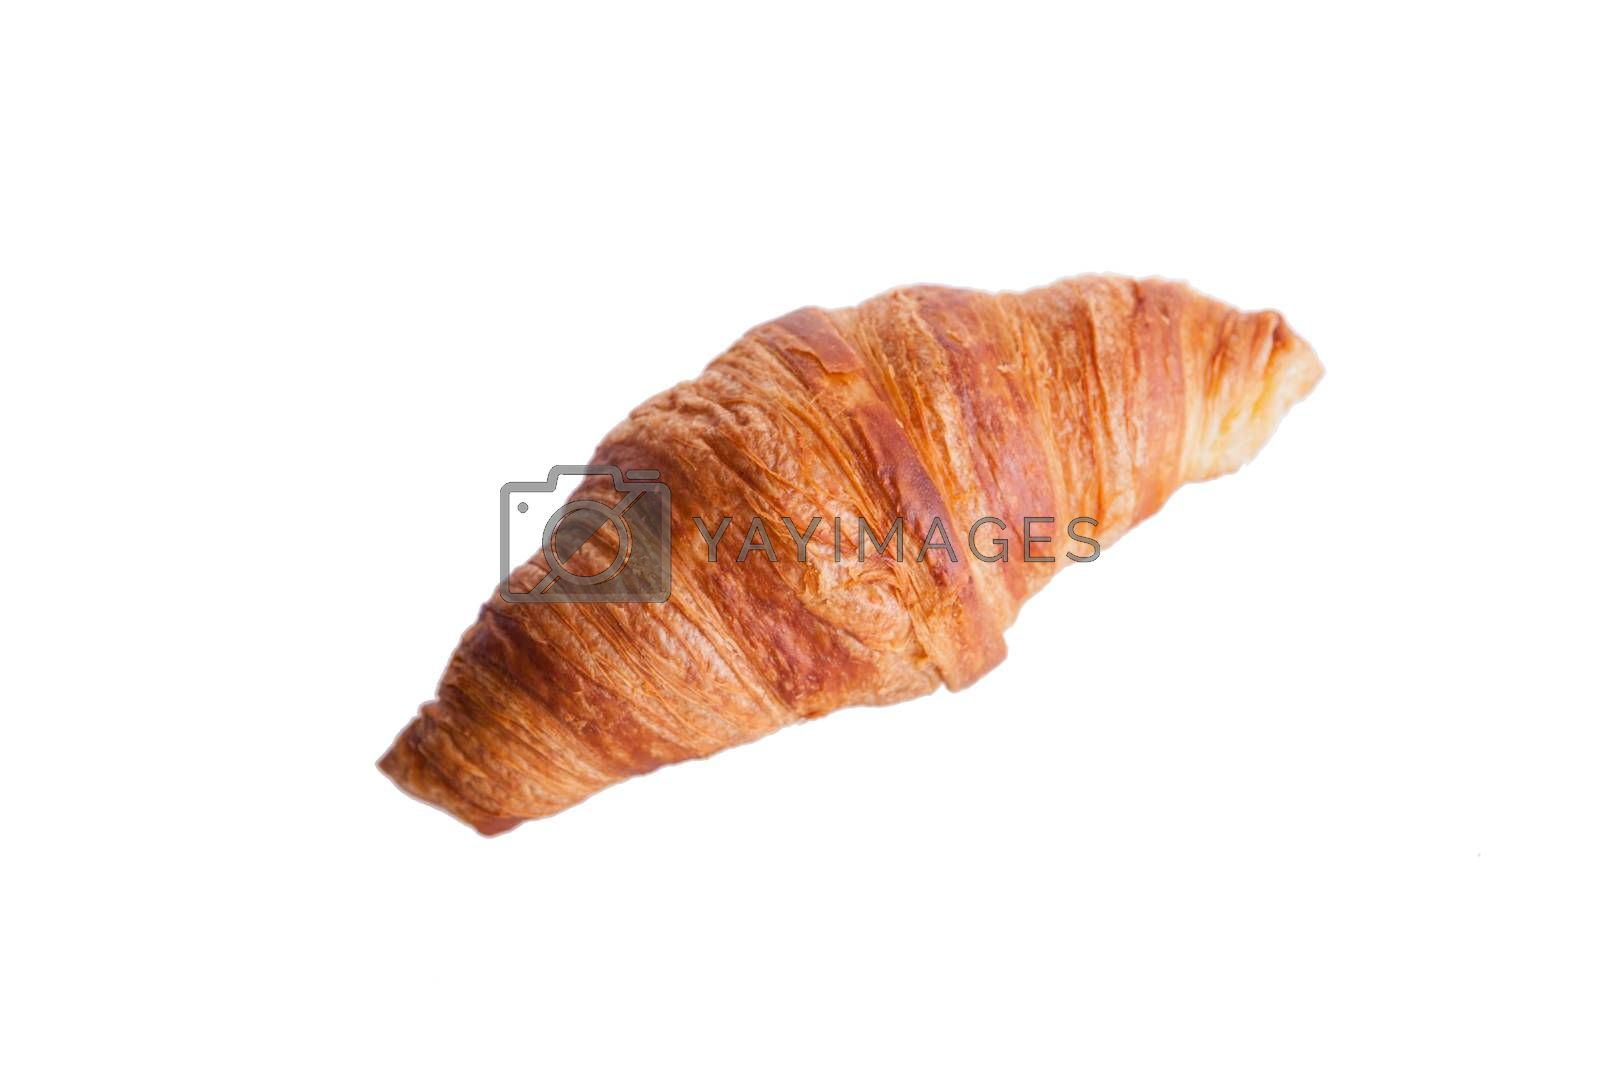 Fresh and tasty croissant over white background by DCStudio